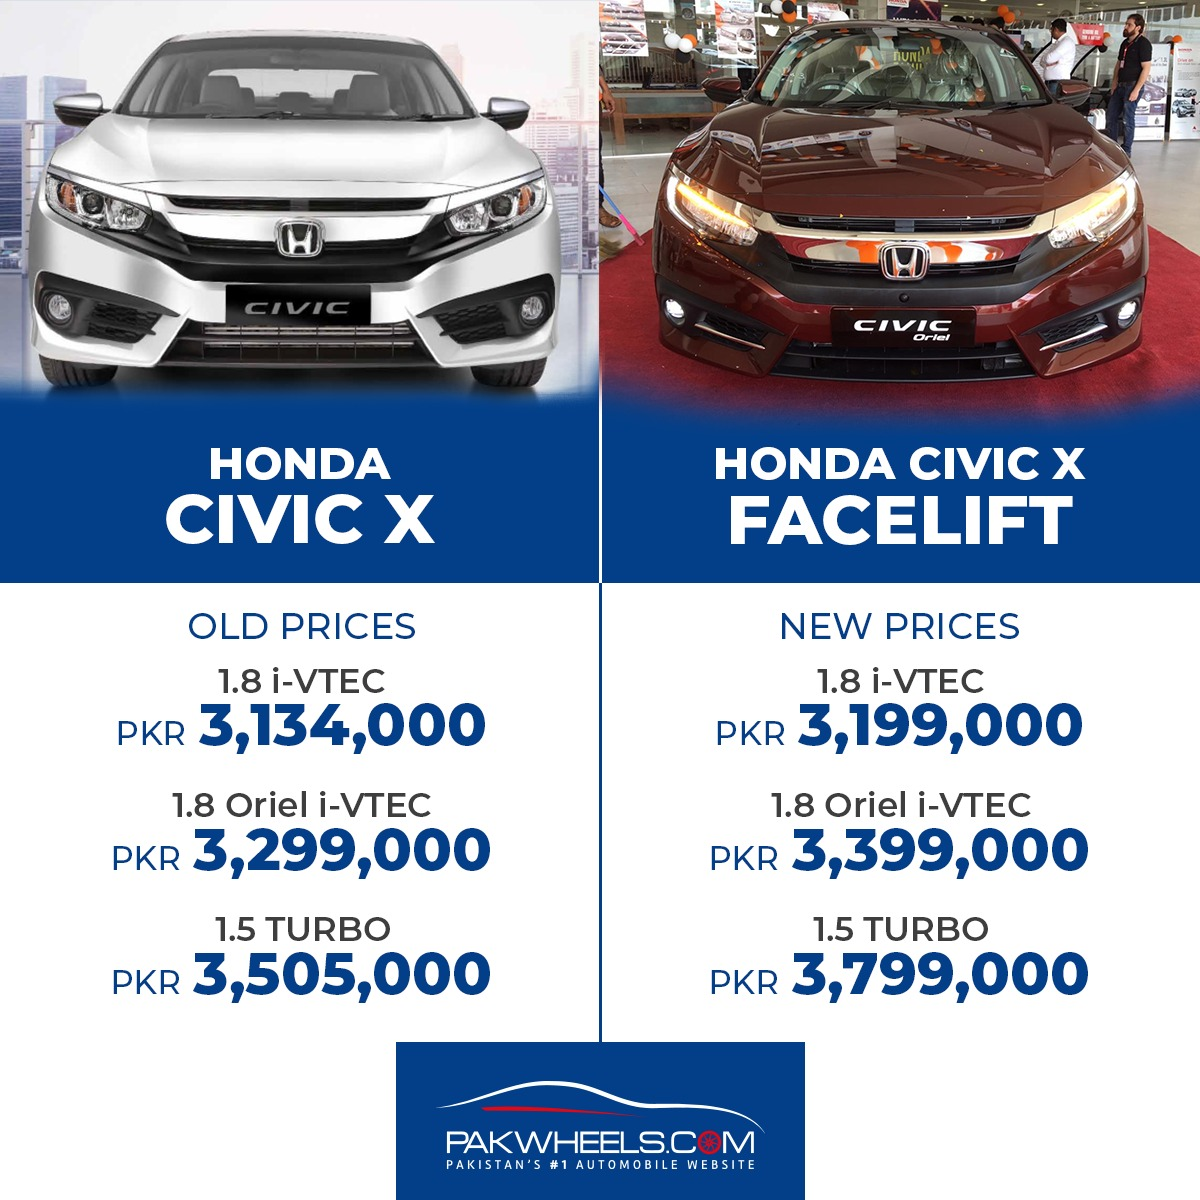 Honda civic facelift prices